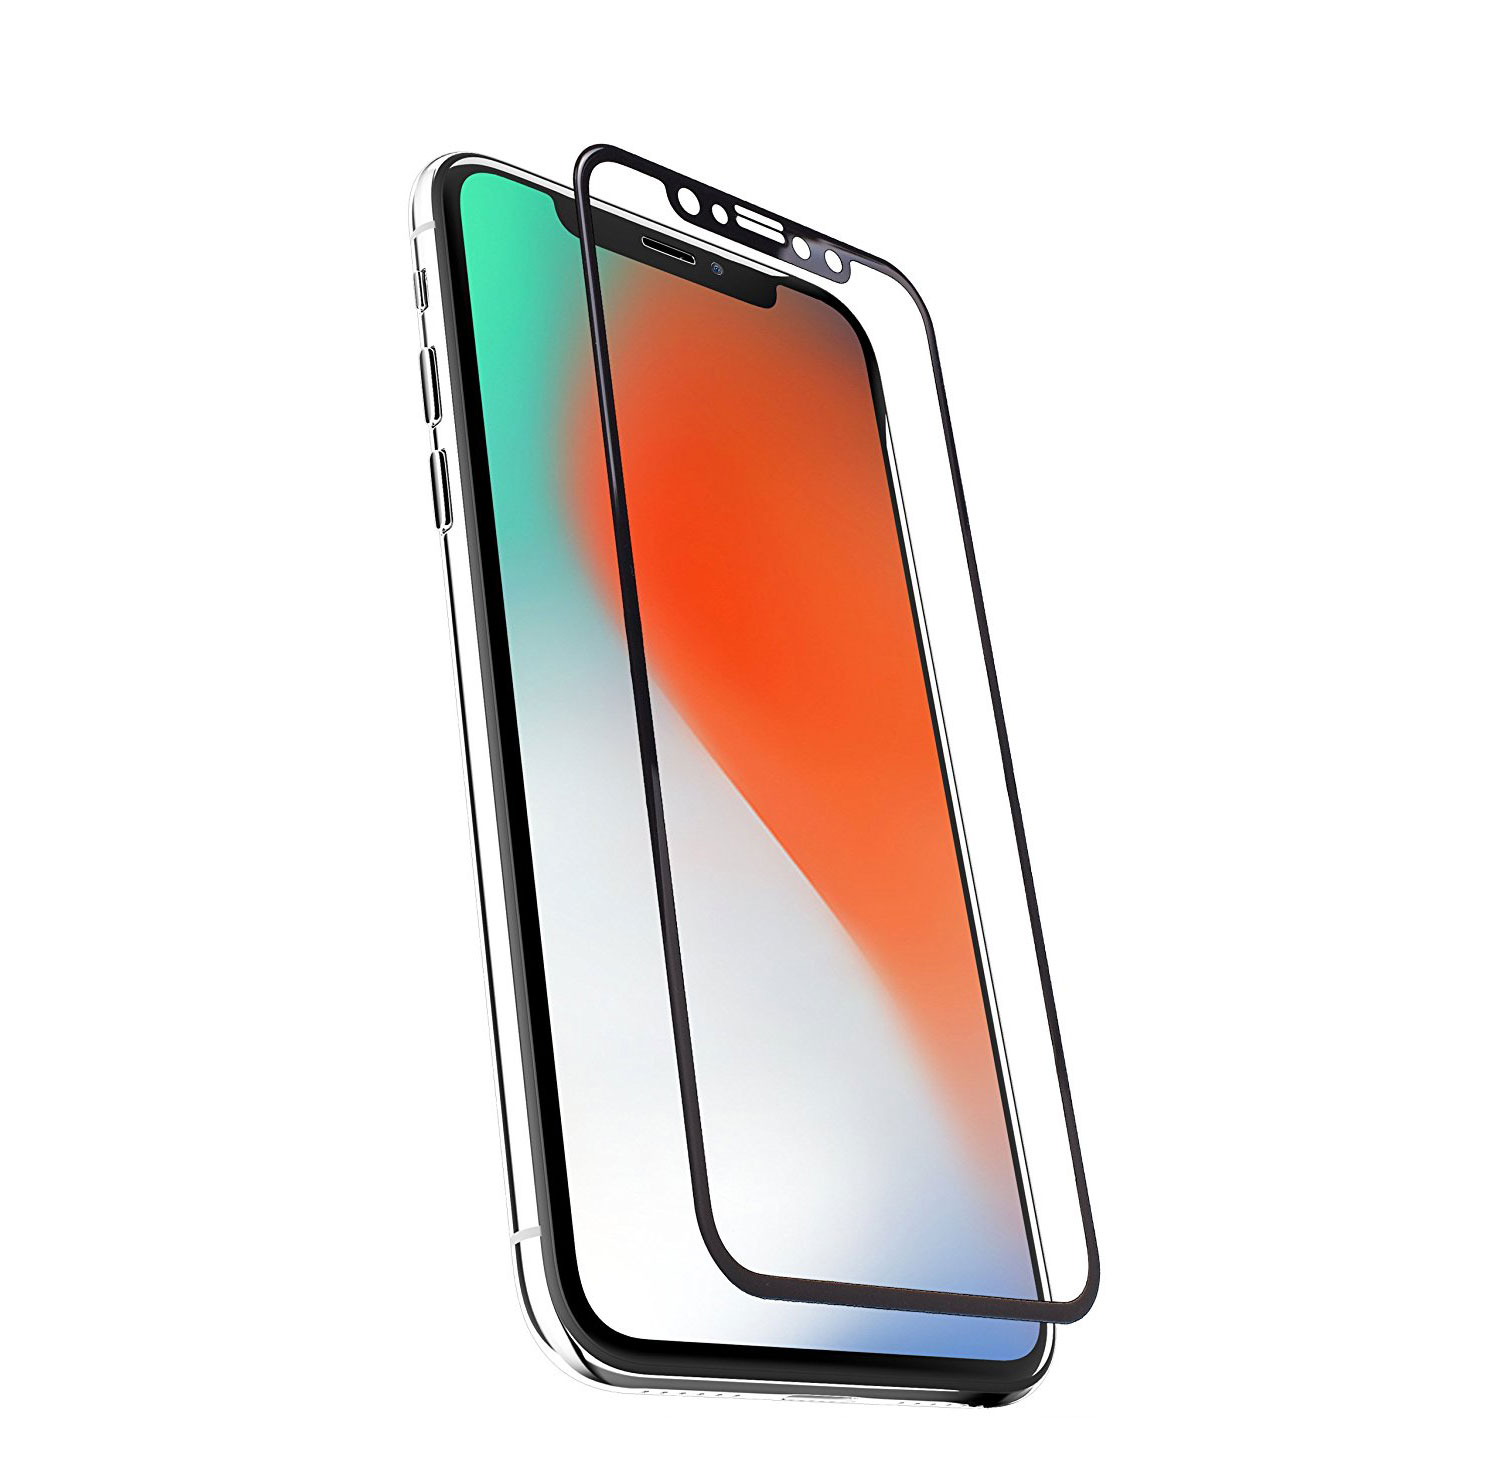 iPhone X Full Screen Tempered Glass Armored Screen Protector 12018447